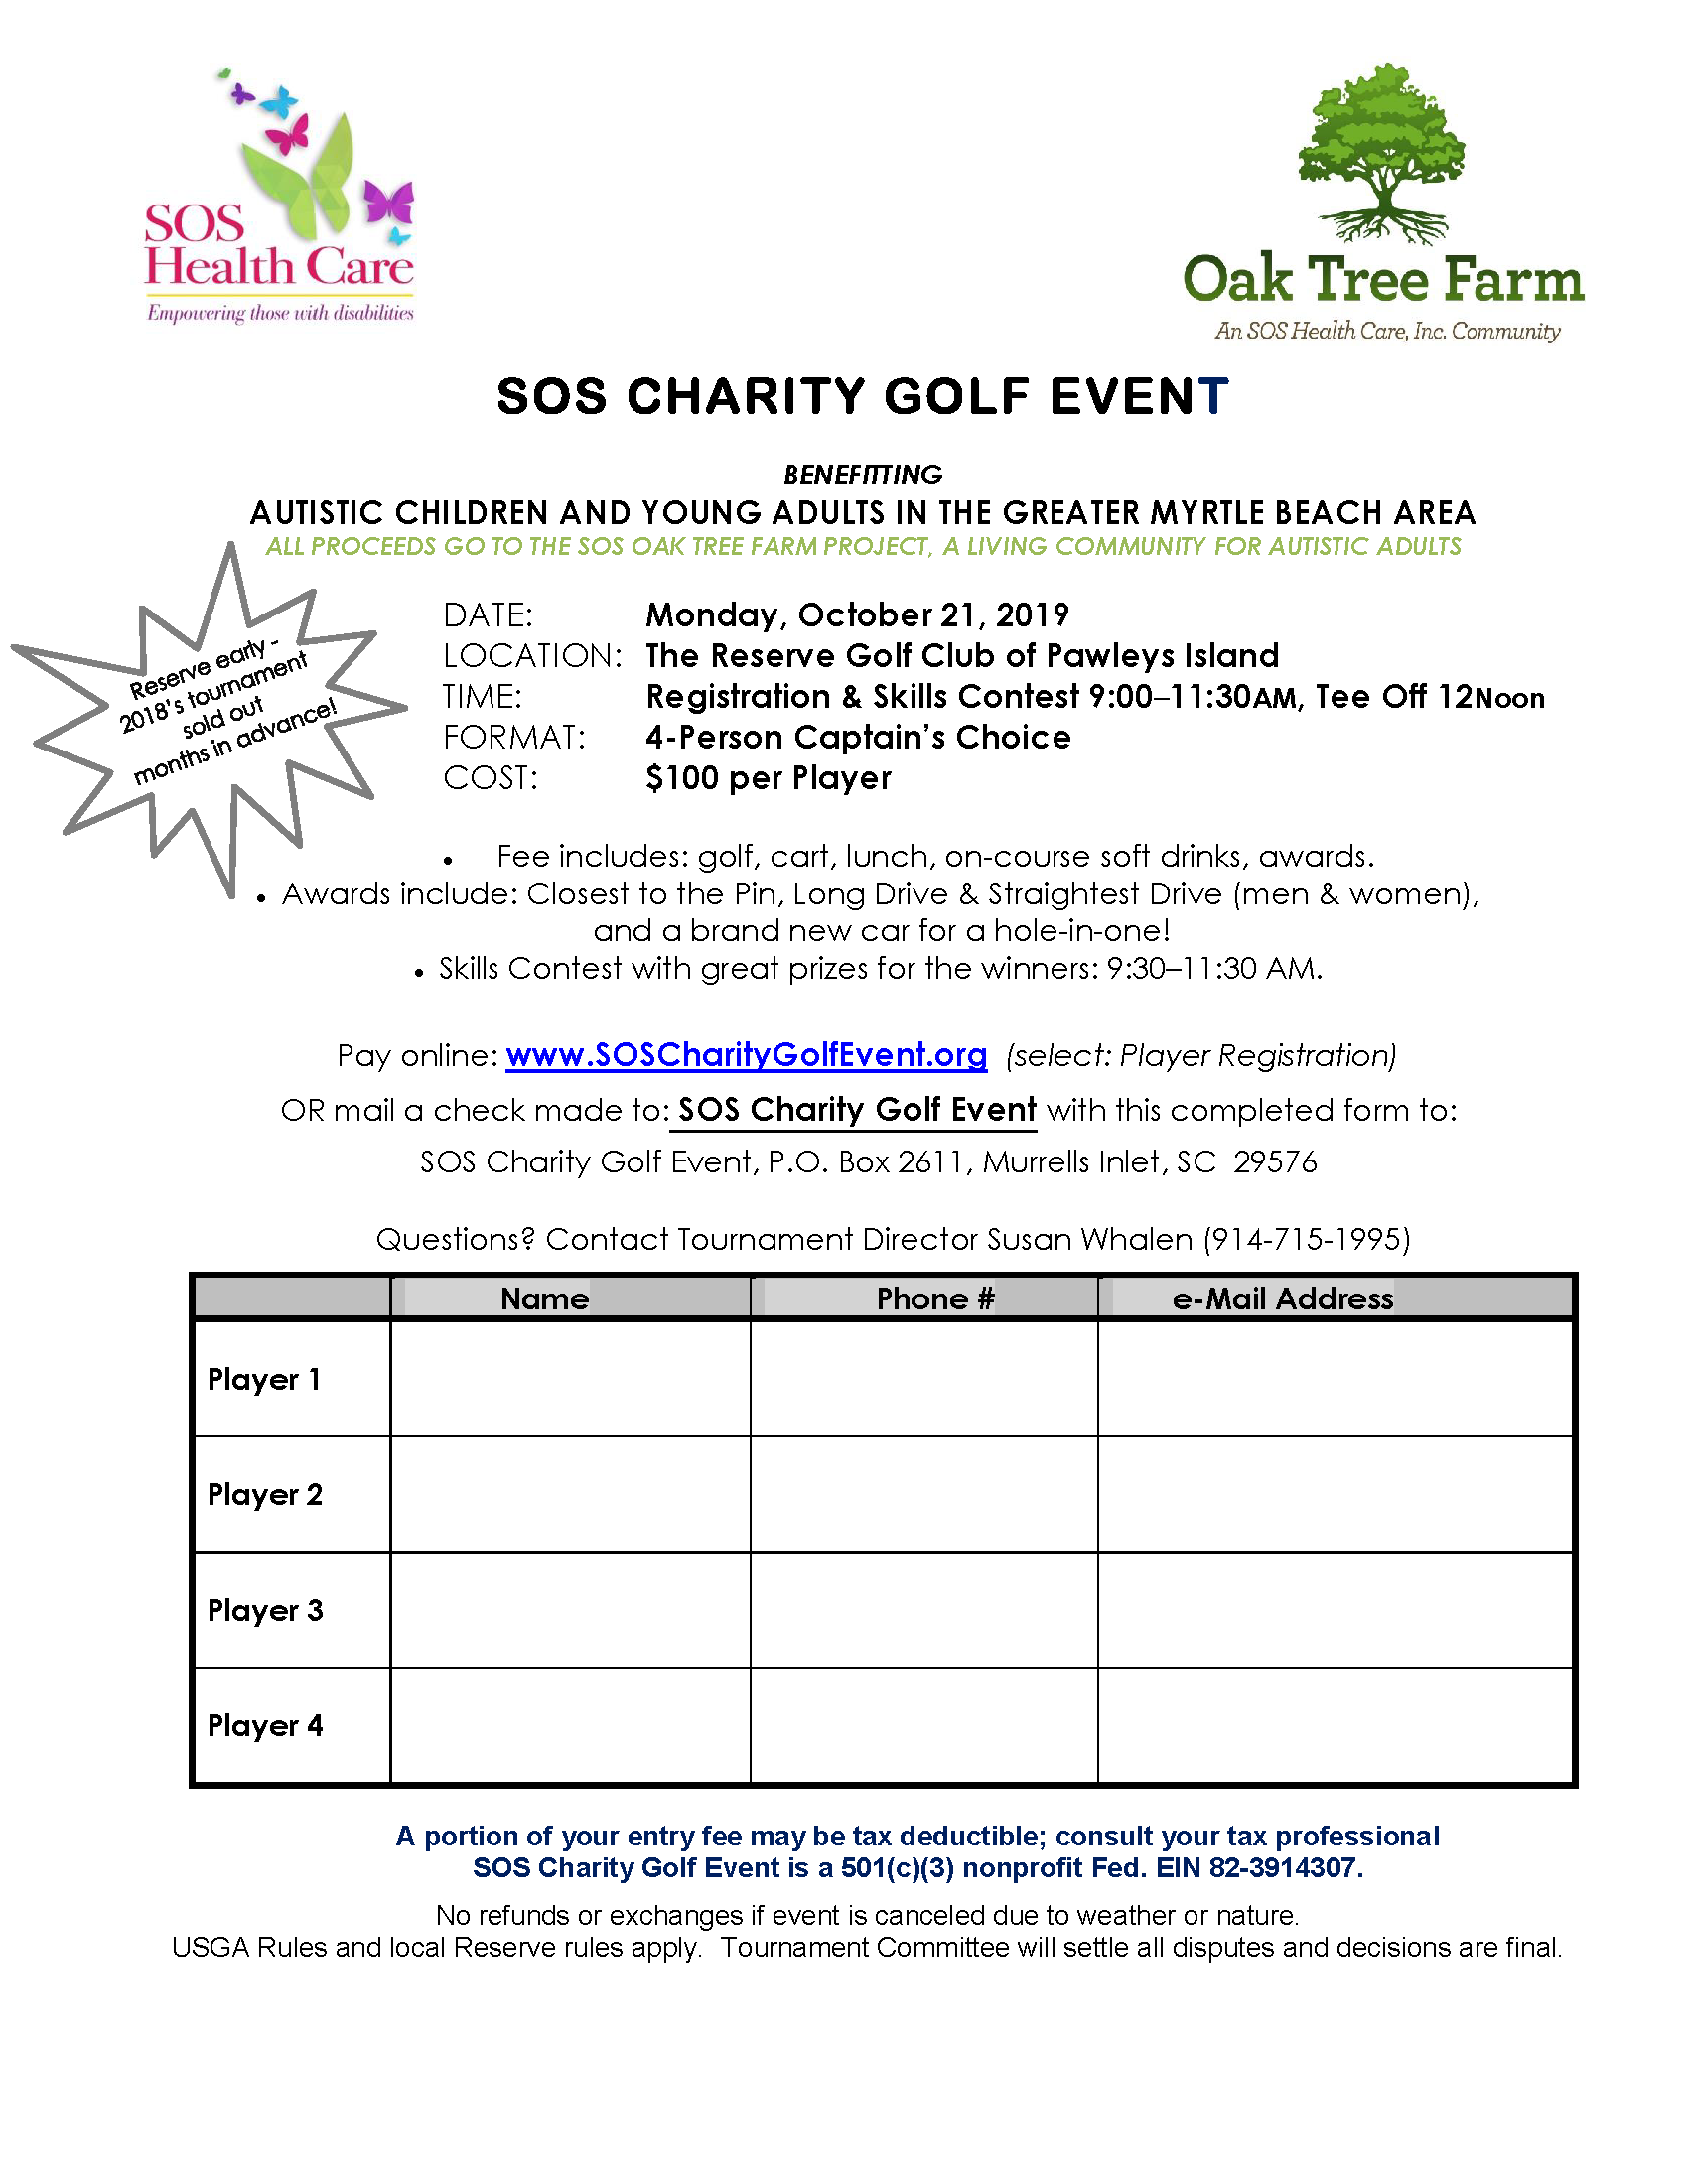 SOS Charity Golf Event Benefitting Children and Adults with